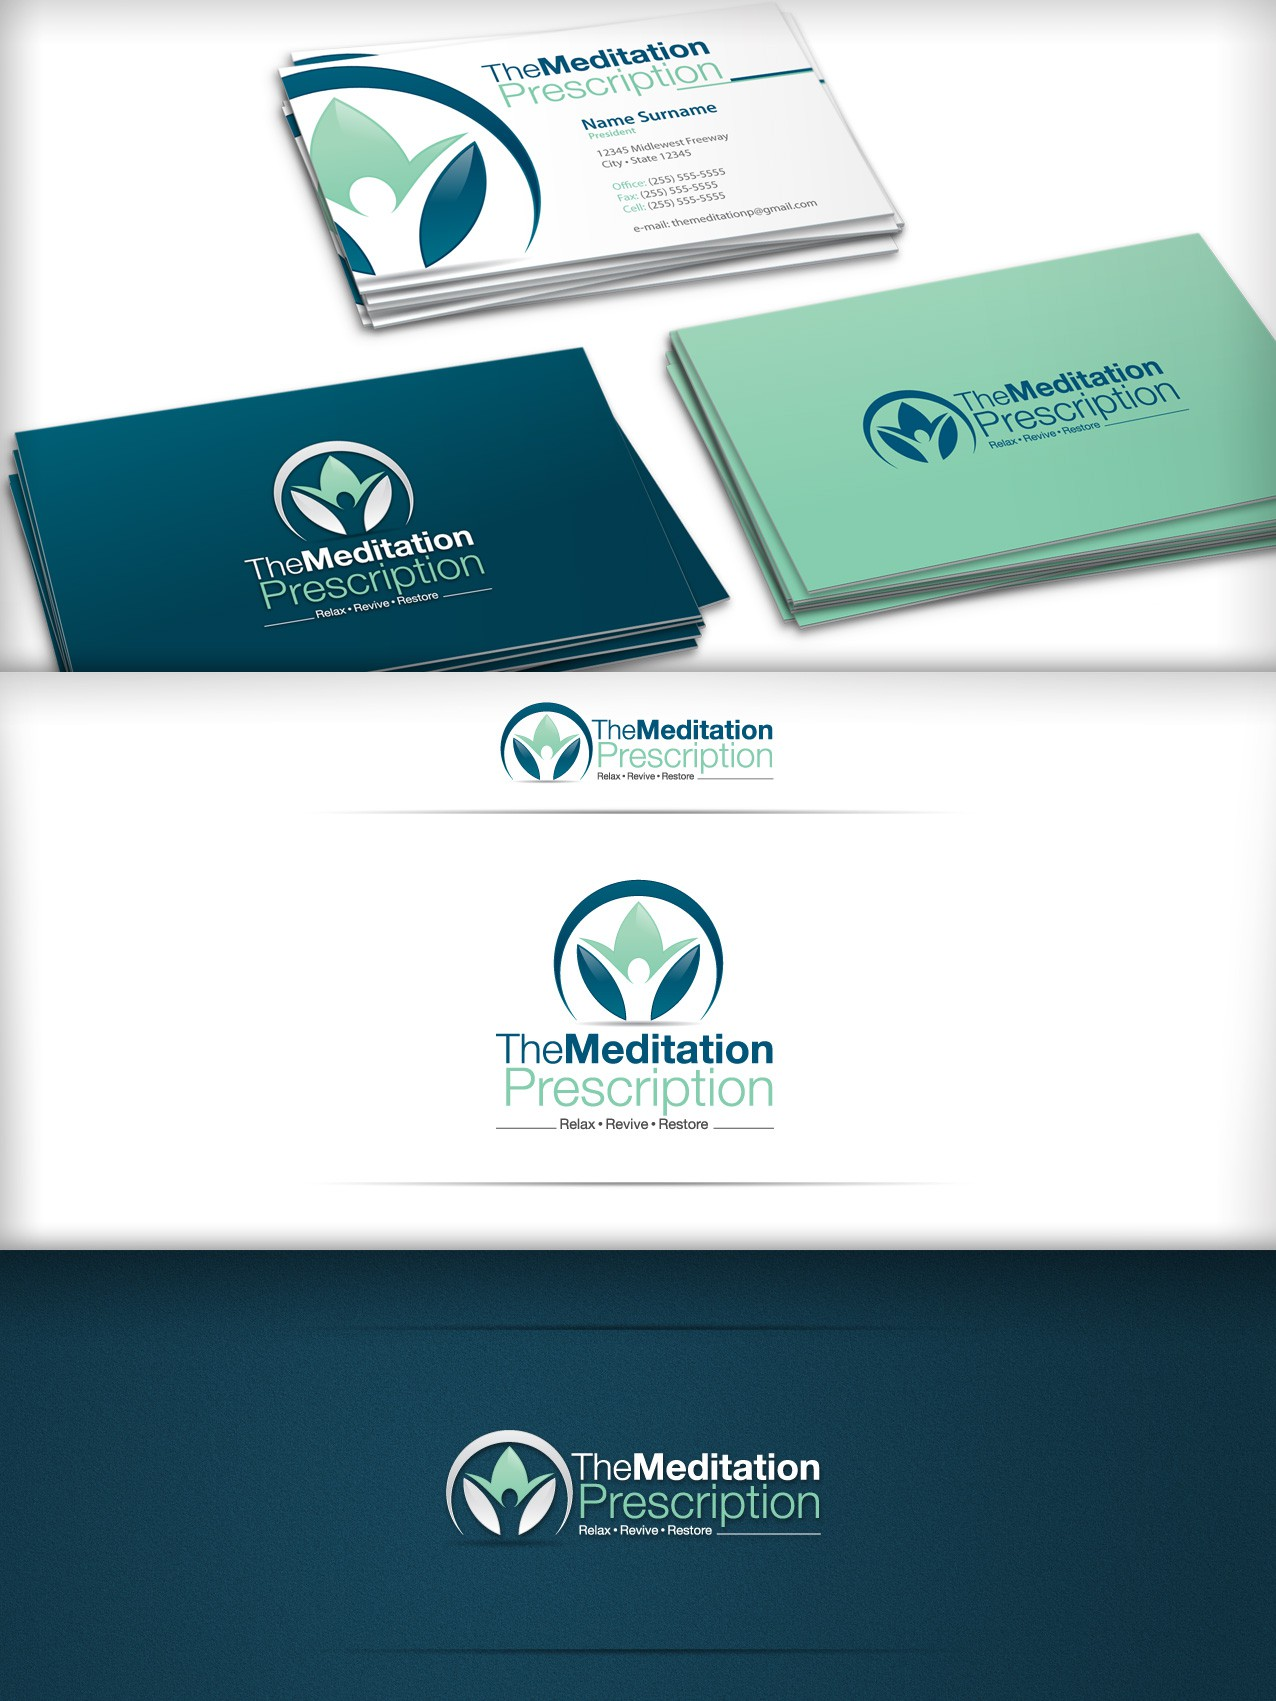 New logo wanted for The Meditation Prescription